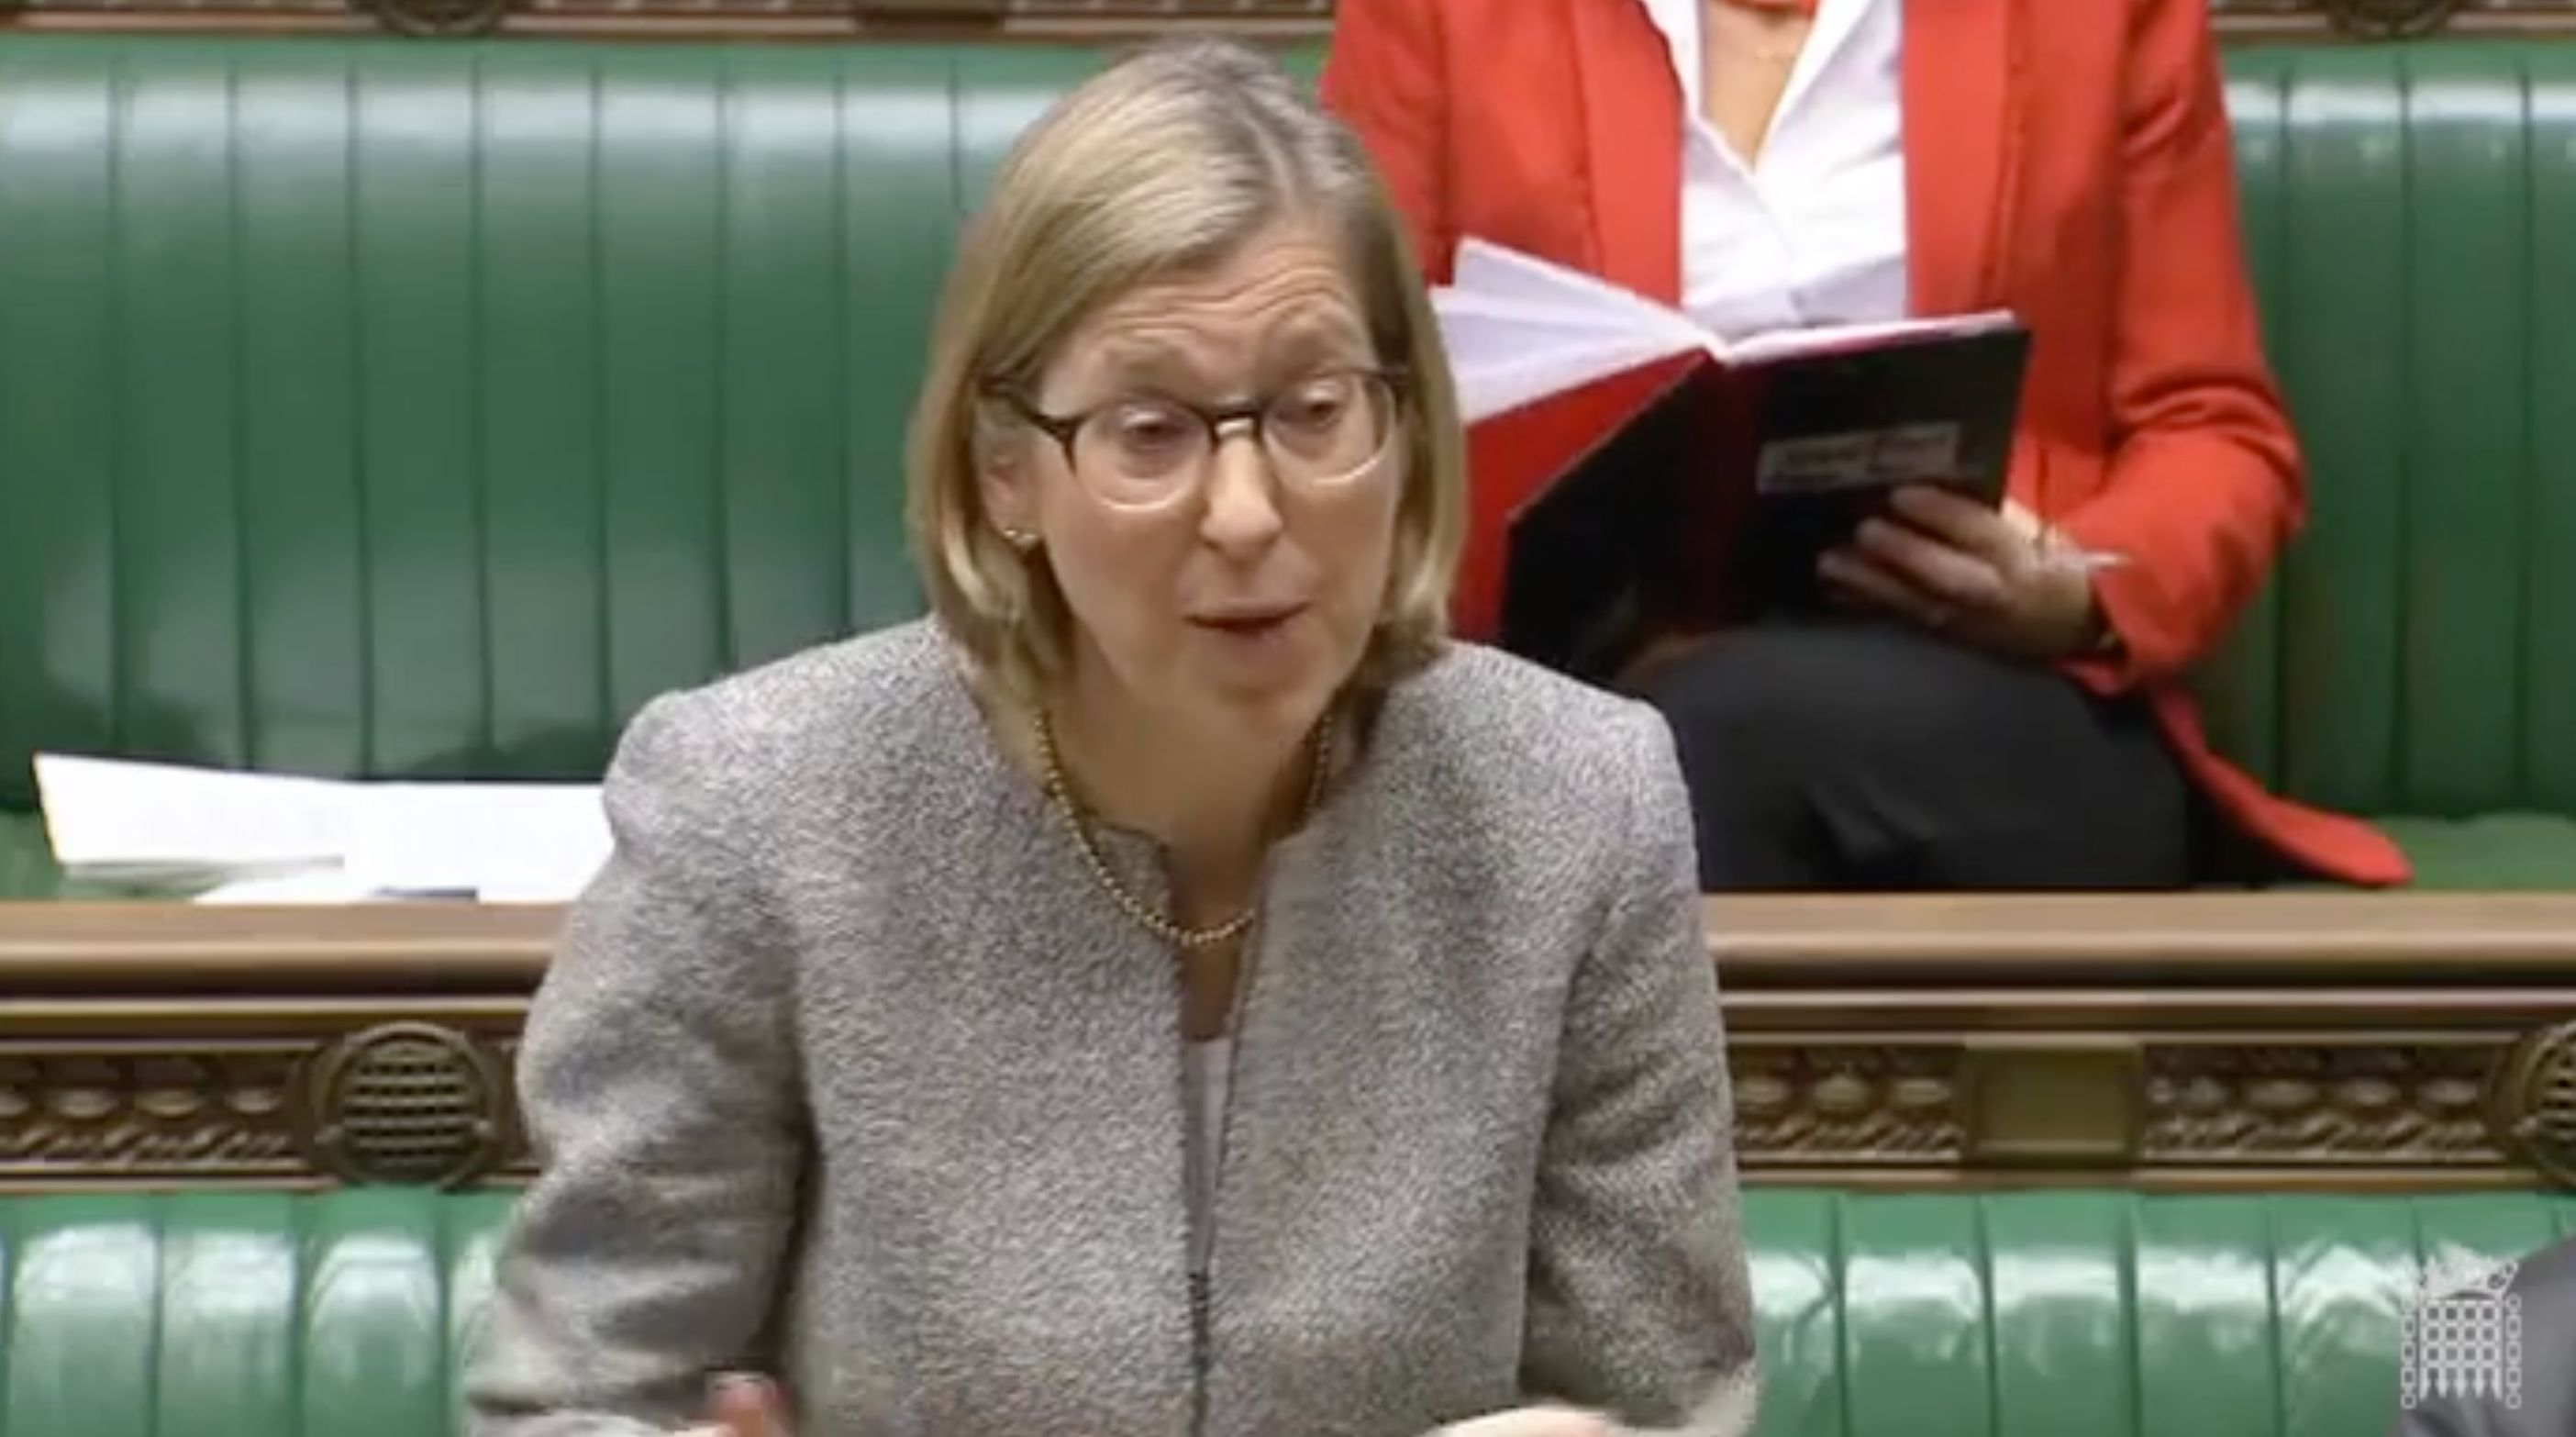 Tory Minister Under Fire For Praising Government's 'Good Housekeeping' Over £1.5bn Benefits